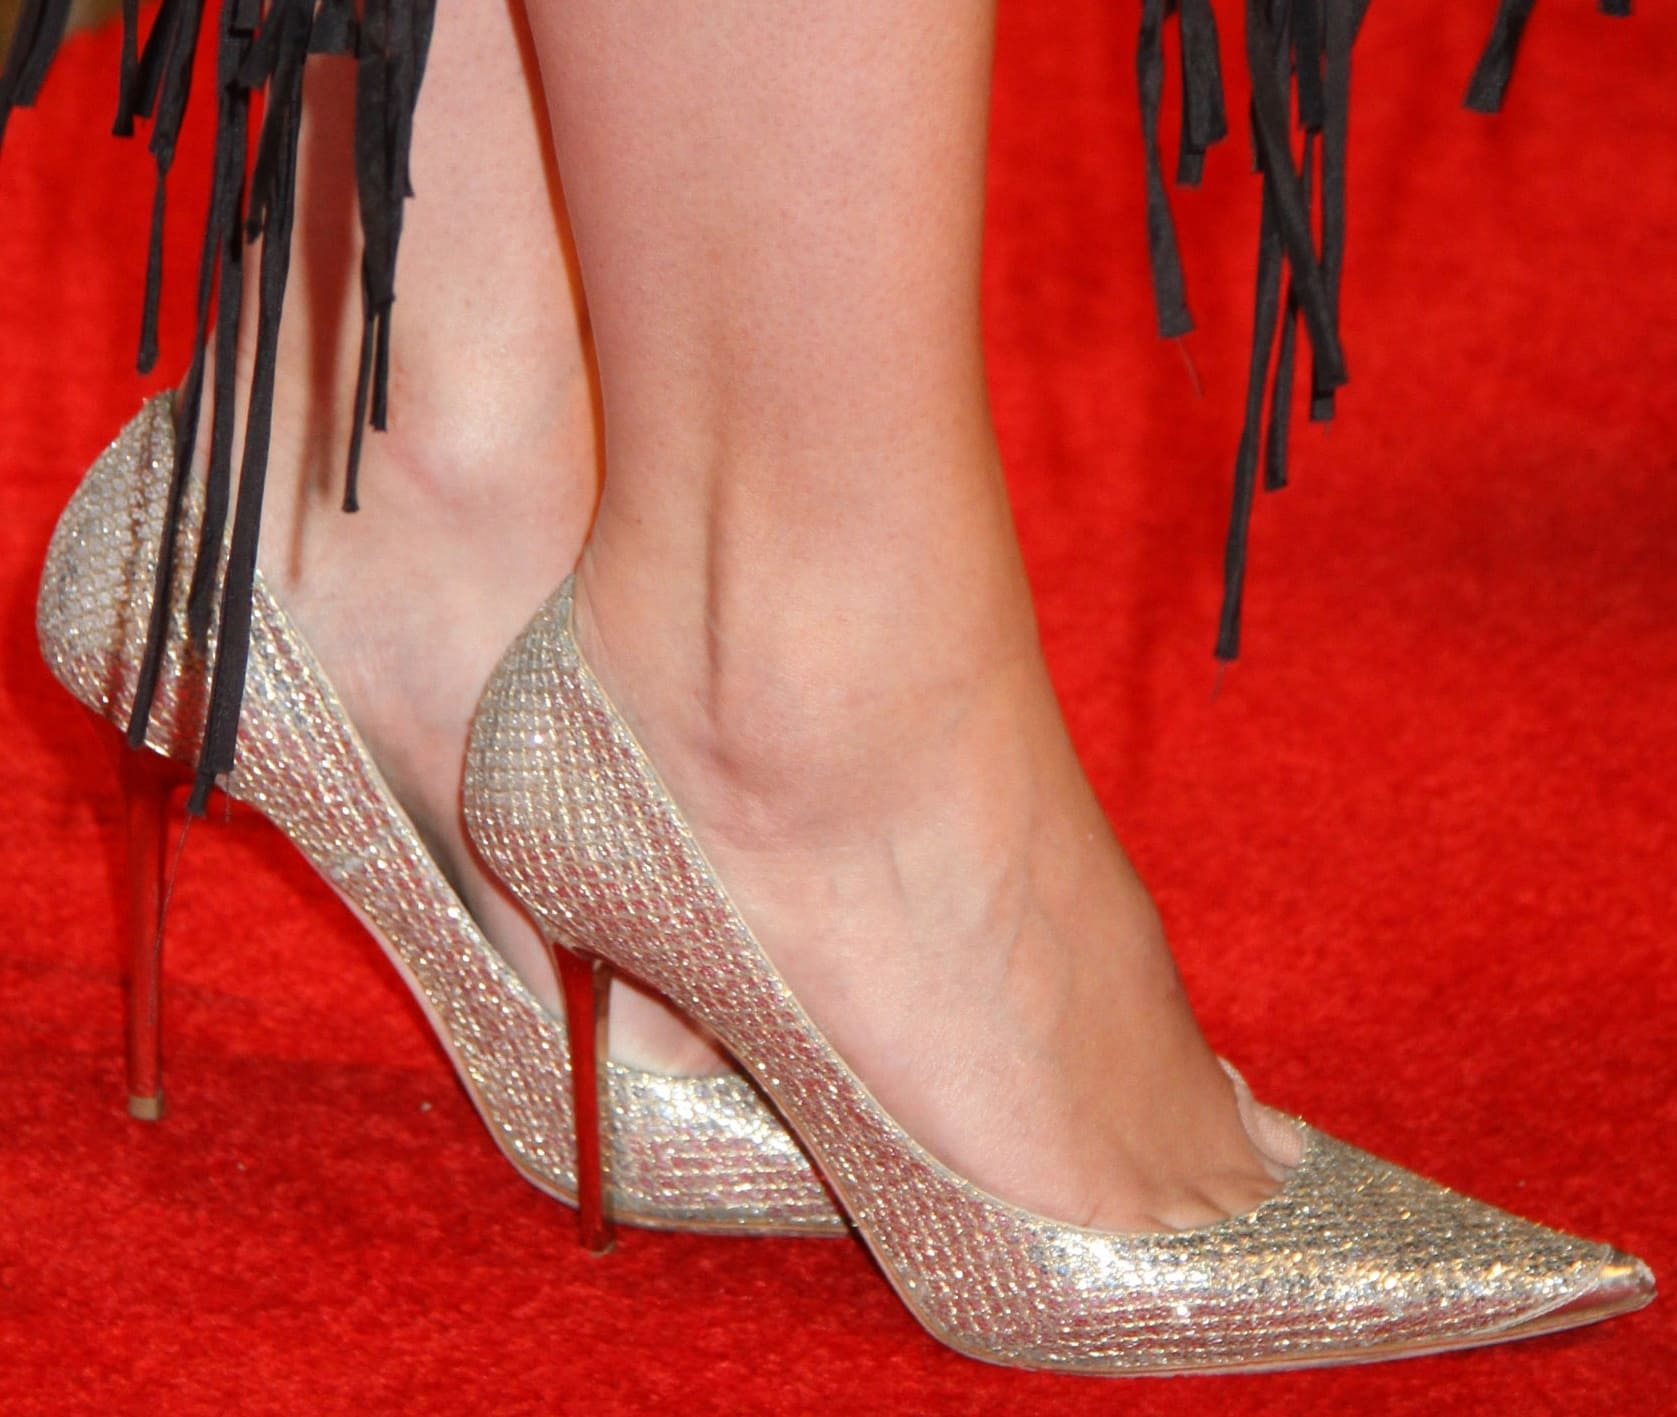 Mischa Barton shows off her sexy size 9 (US) feet in pointy high heels